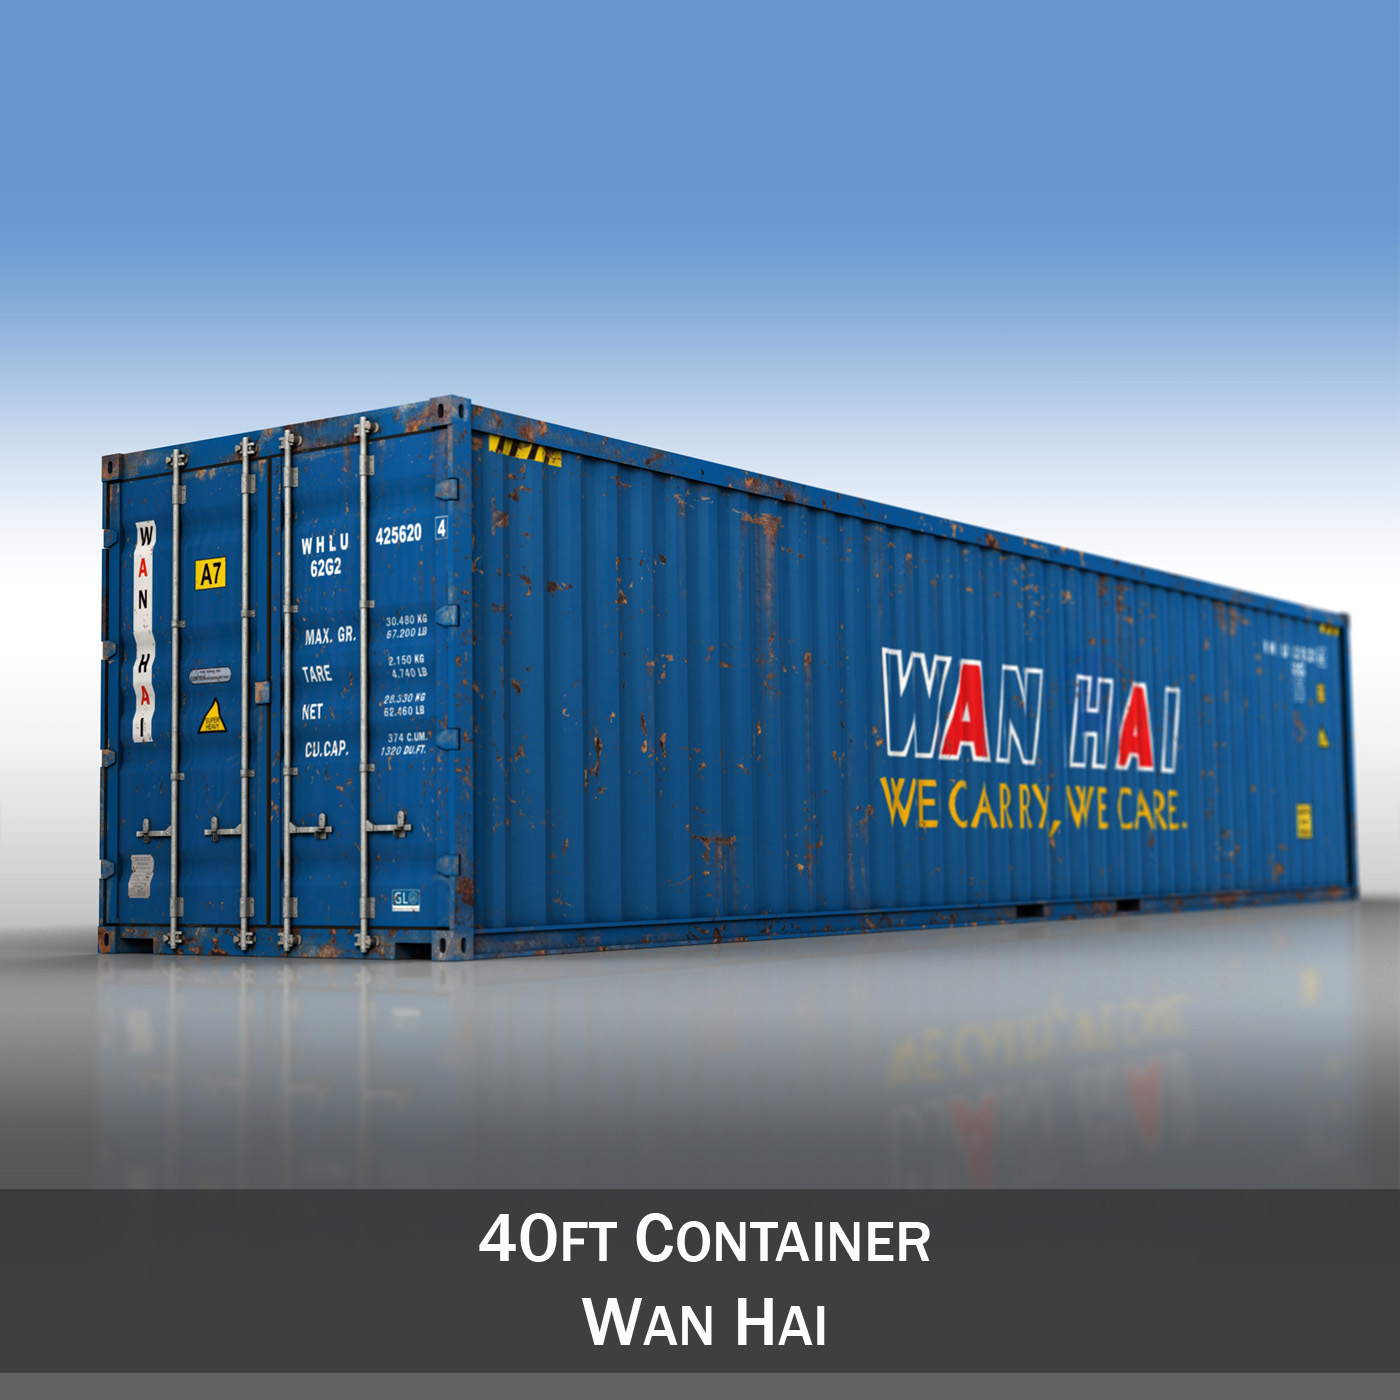 40ft shipping container – wan hai 3d model 3ds fbx lwo lw lws obj c4d 265149